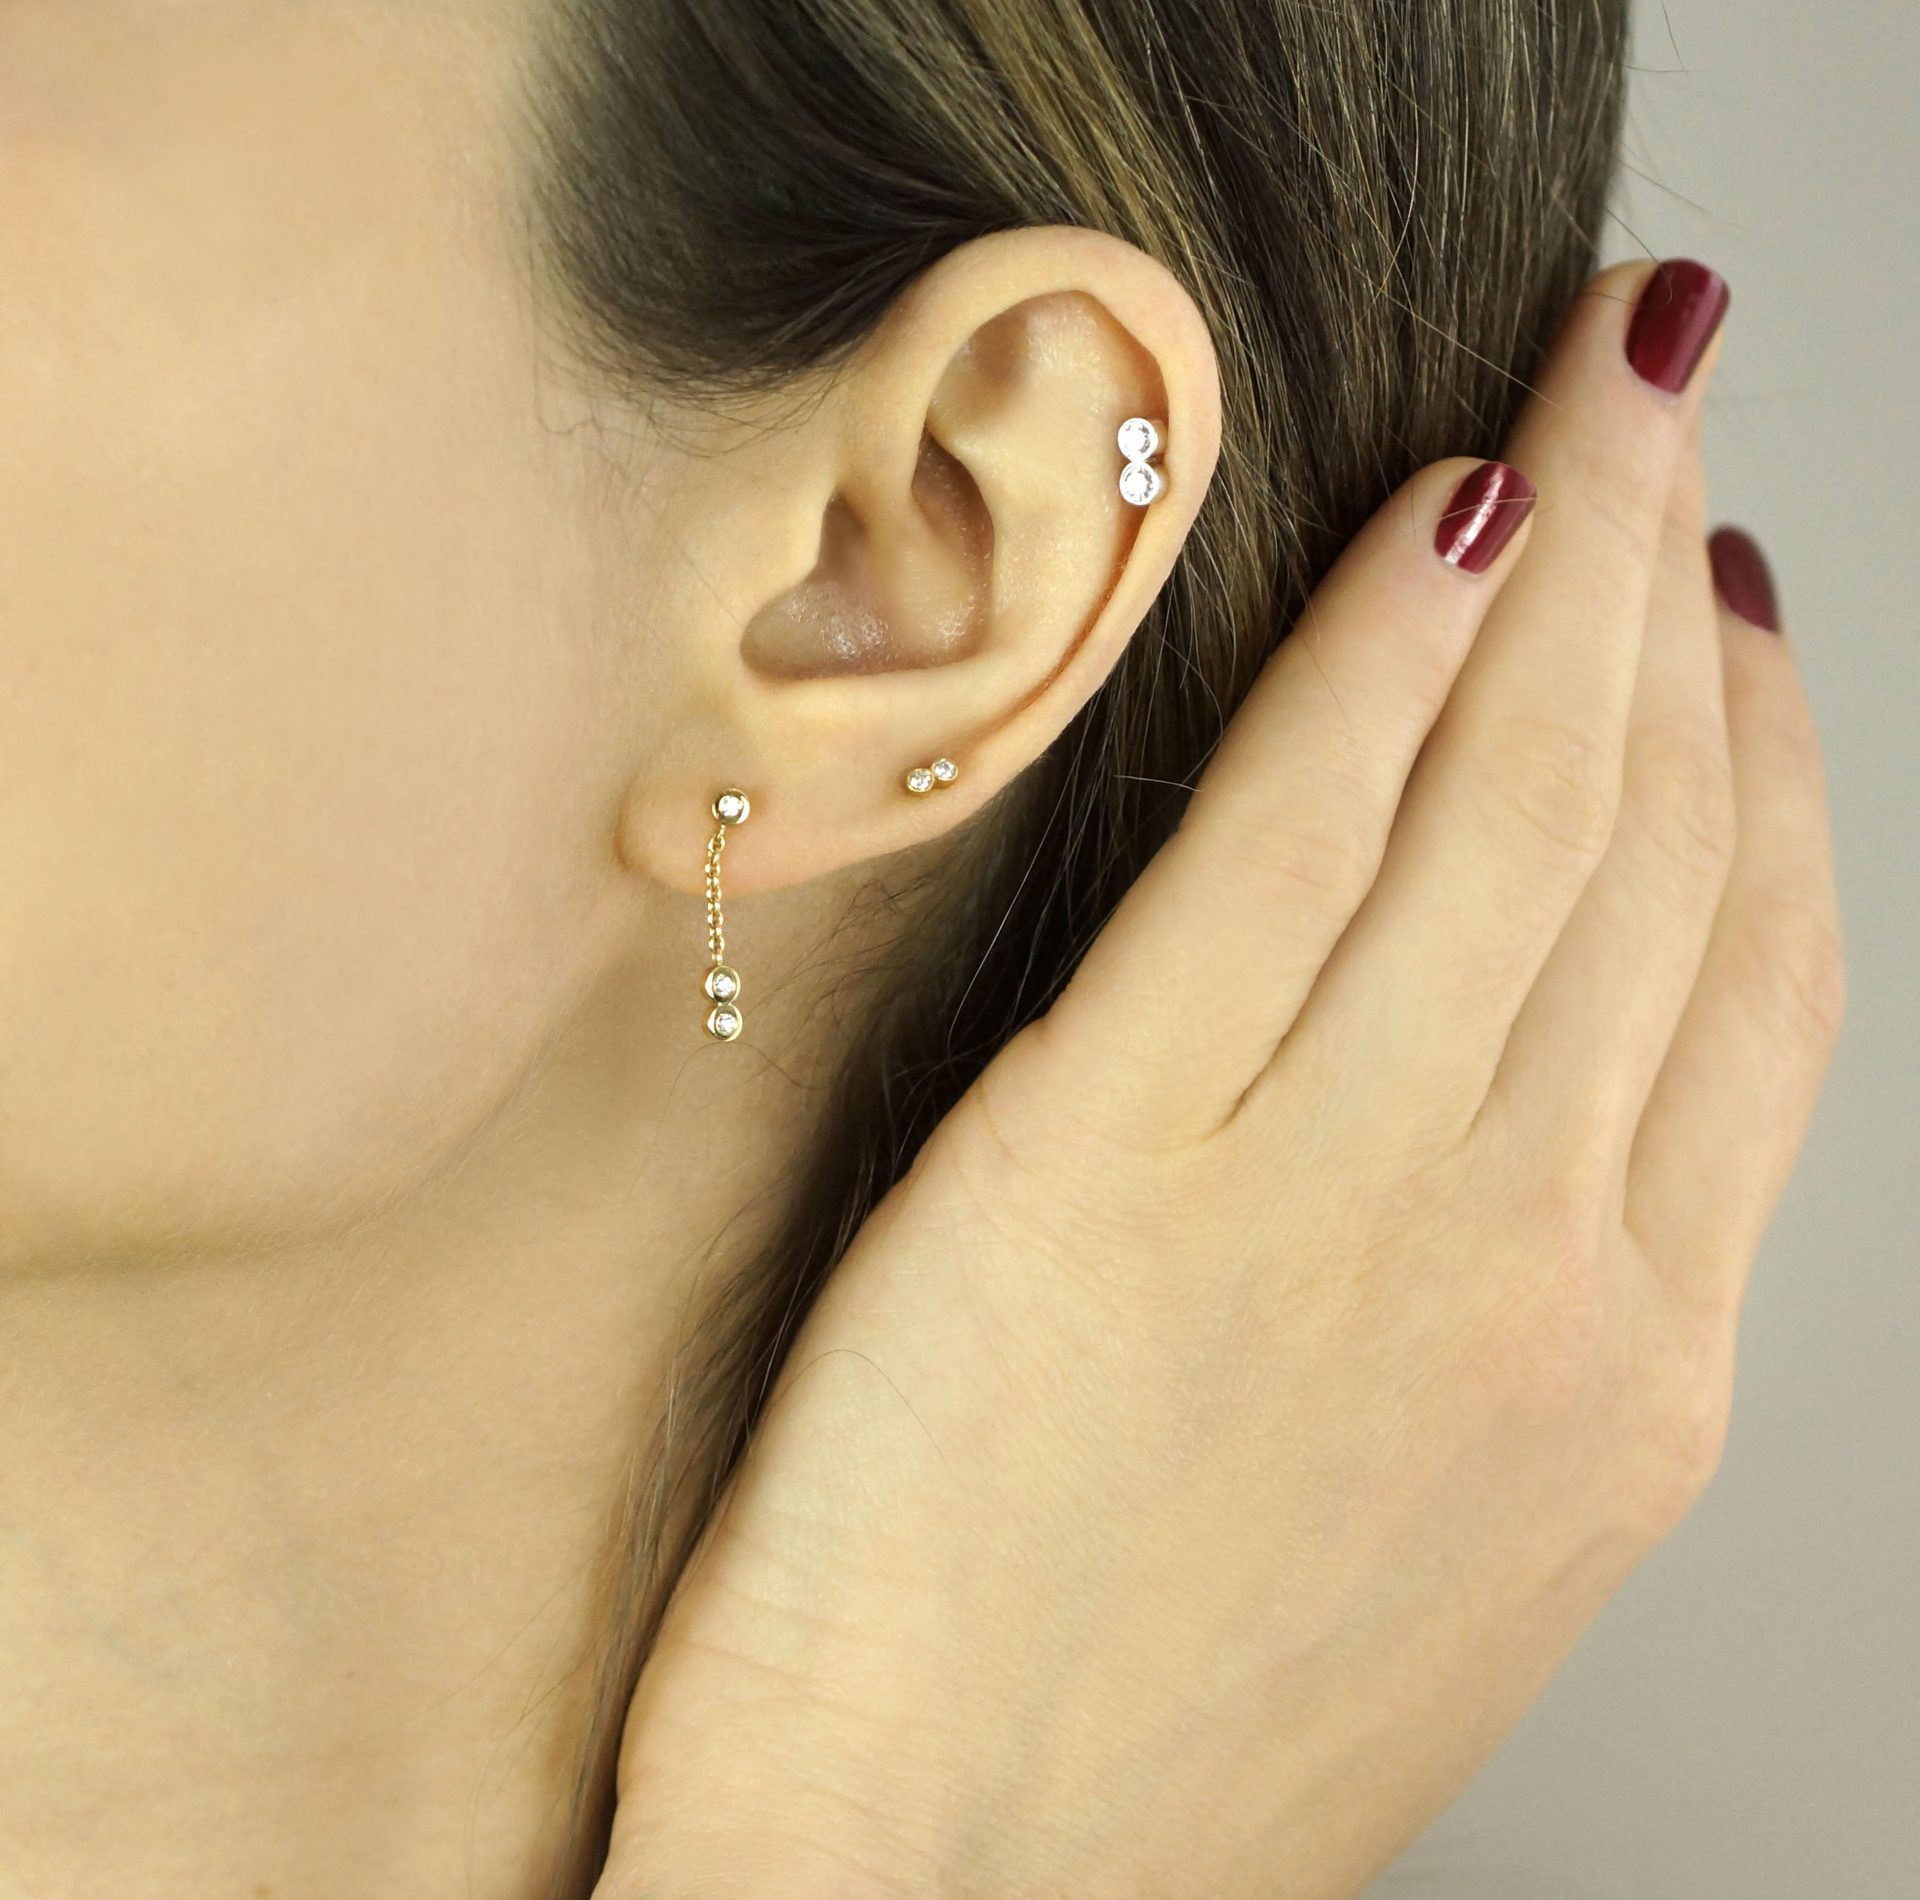 What type of jewellery should you buy for a curated ear? Luxury Ear Piercing Jewellery in London Lena Cohen Unique Designs Hand Crafted By Master Goldsmiths